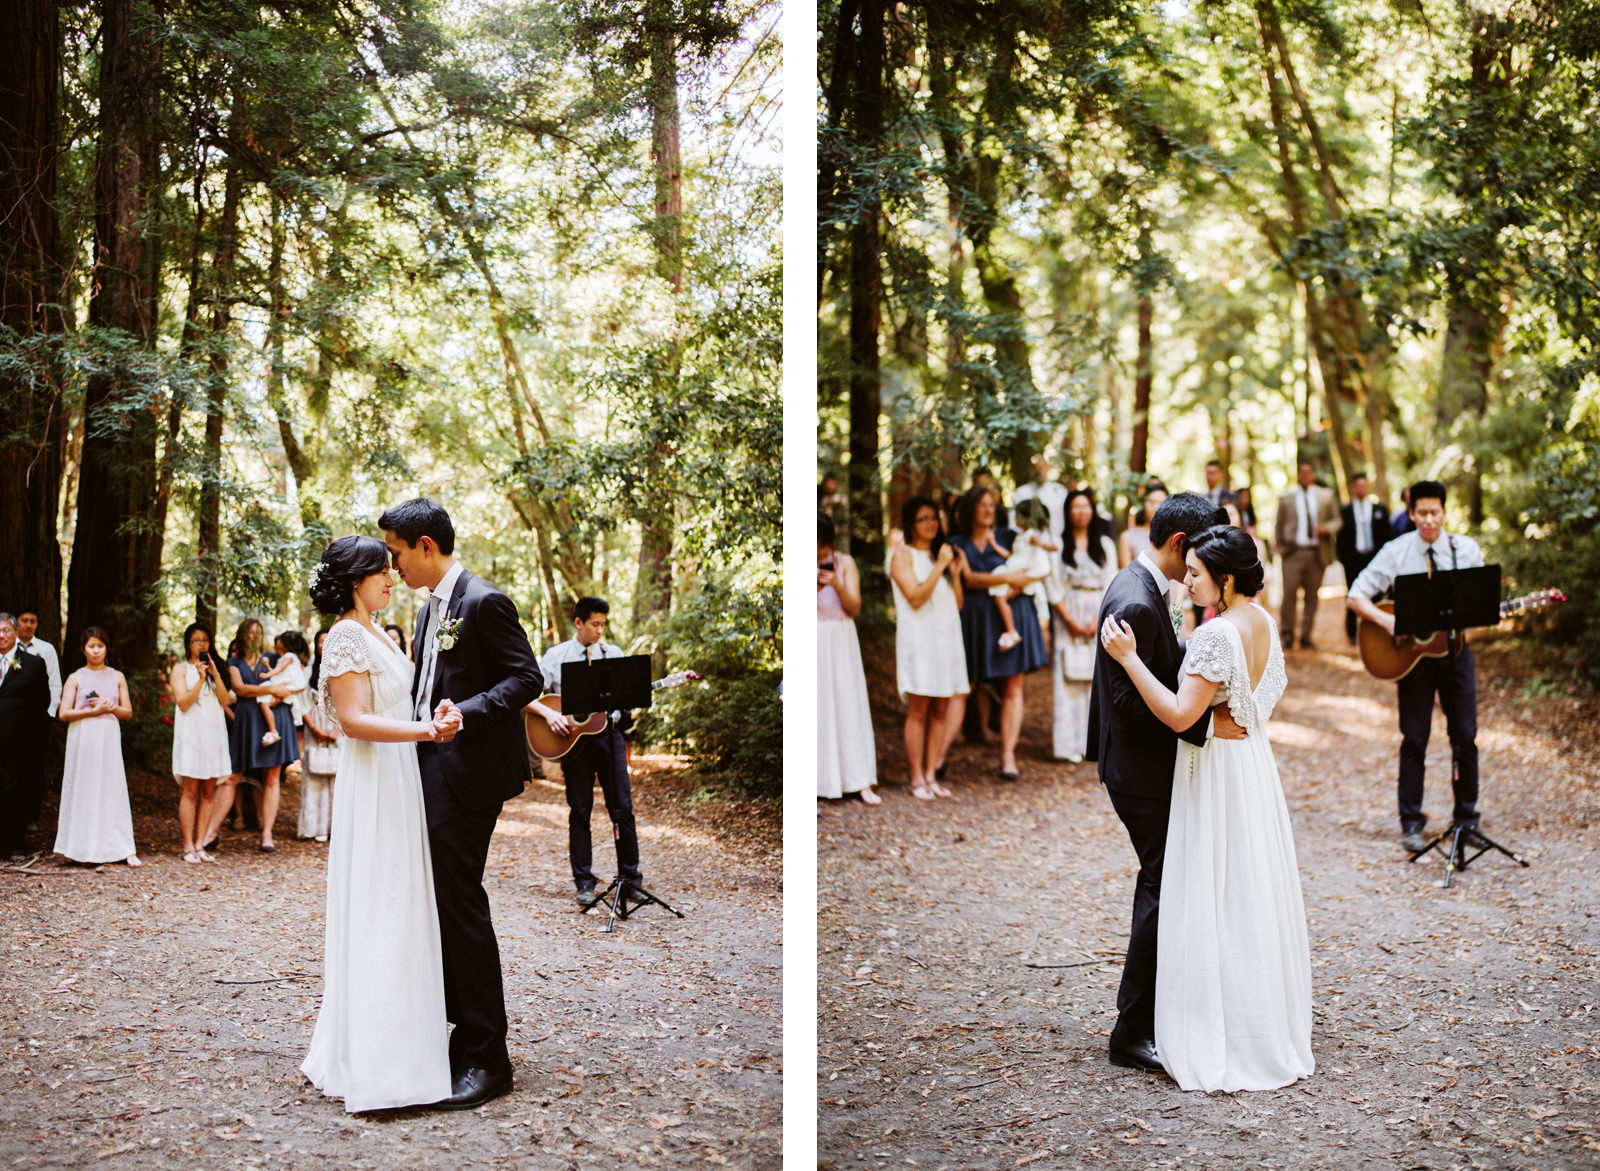 kimclay-blog-074 REDWOOD FOREST WEDDING